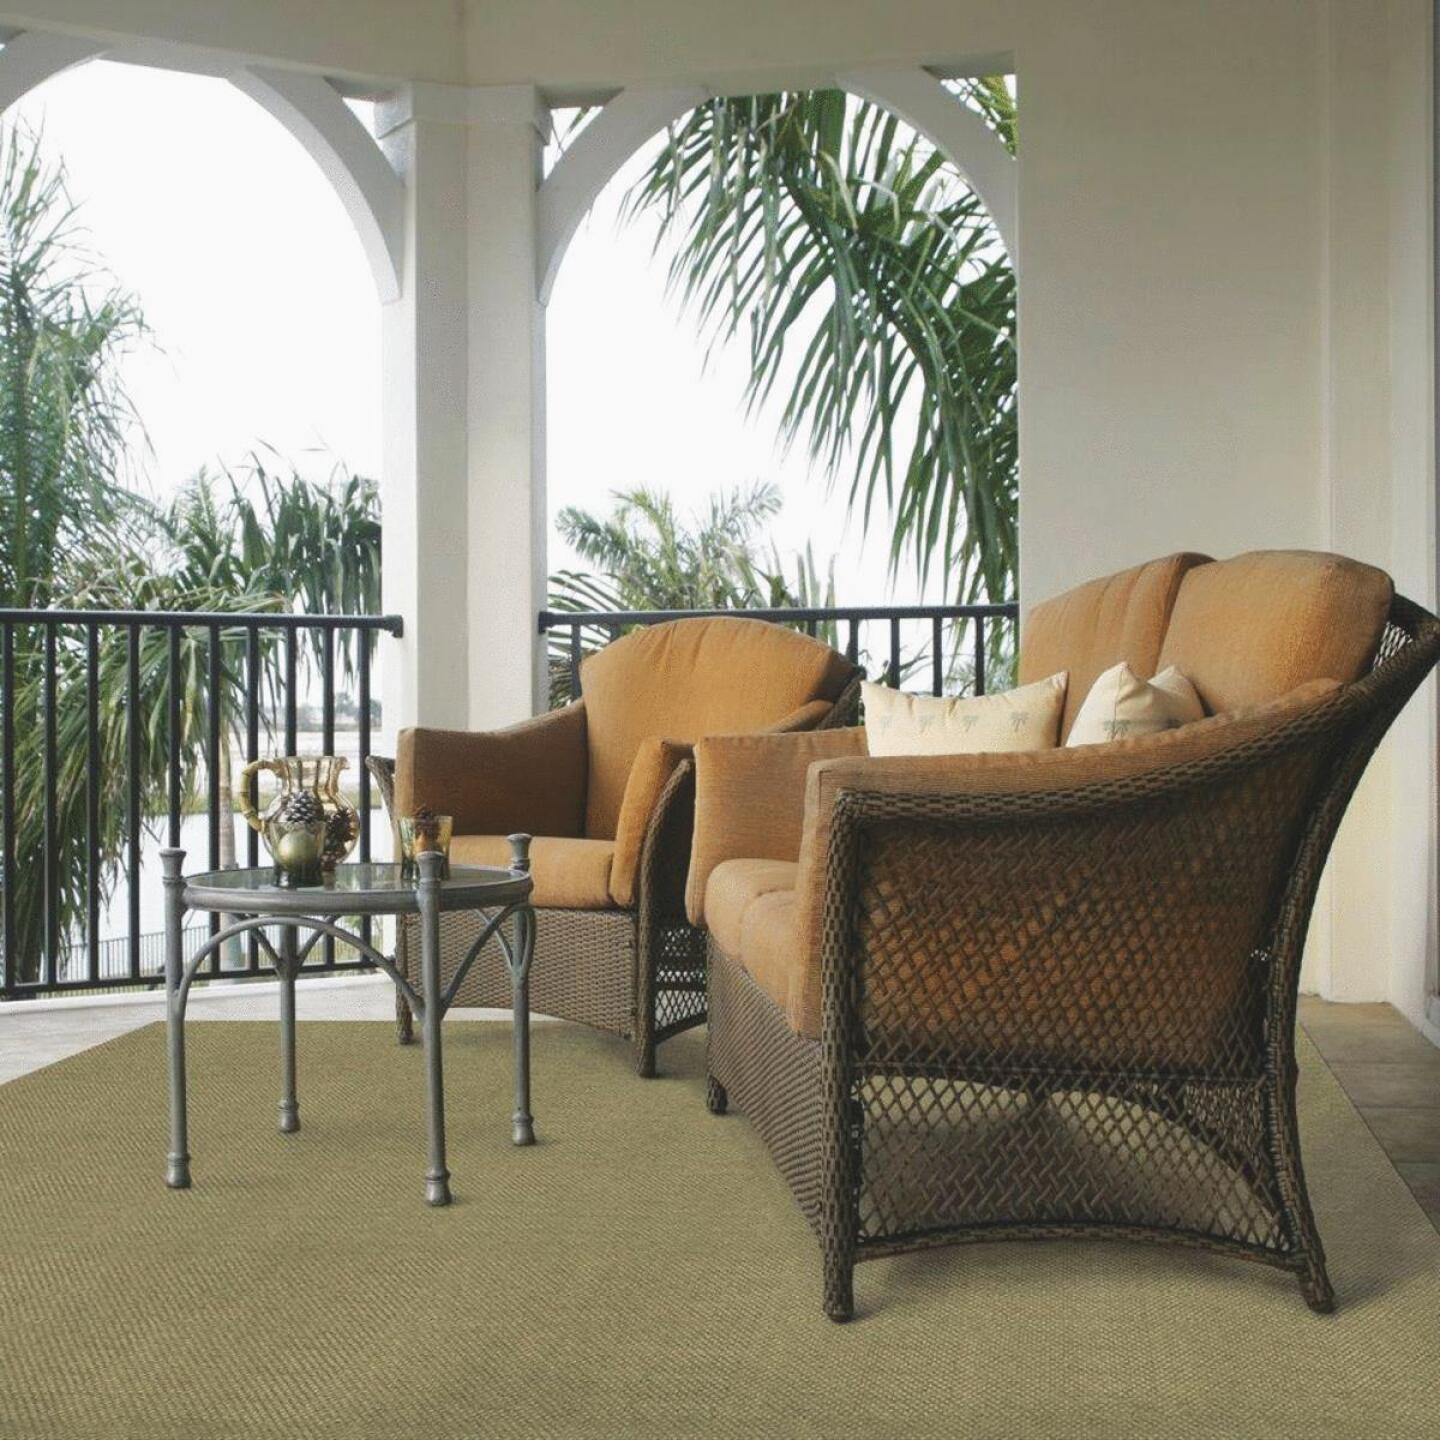 Foss Manufacturing Ozite 6 Ft. x 8 Ft. Indoor/Outdoor Area Rug Image 4